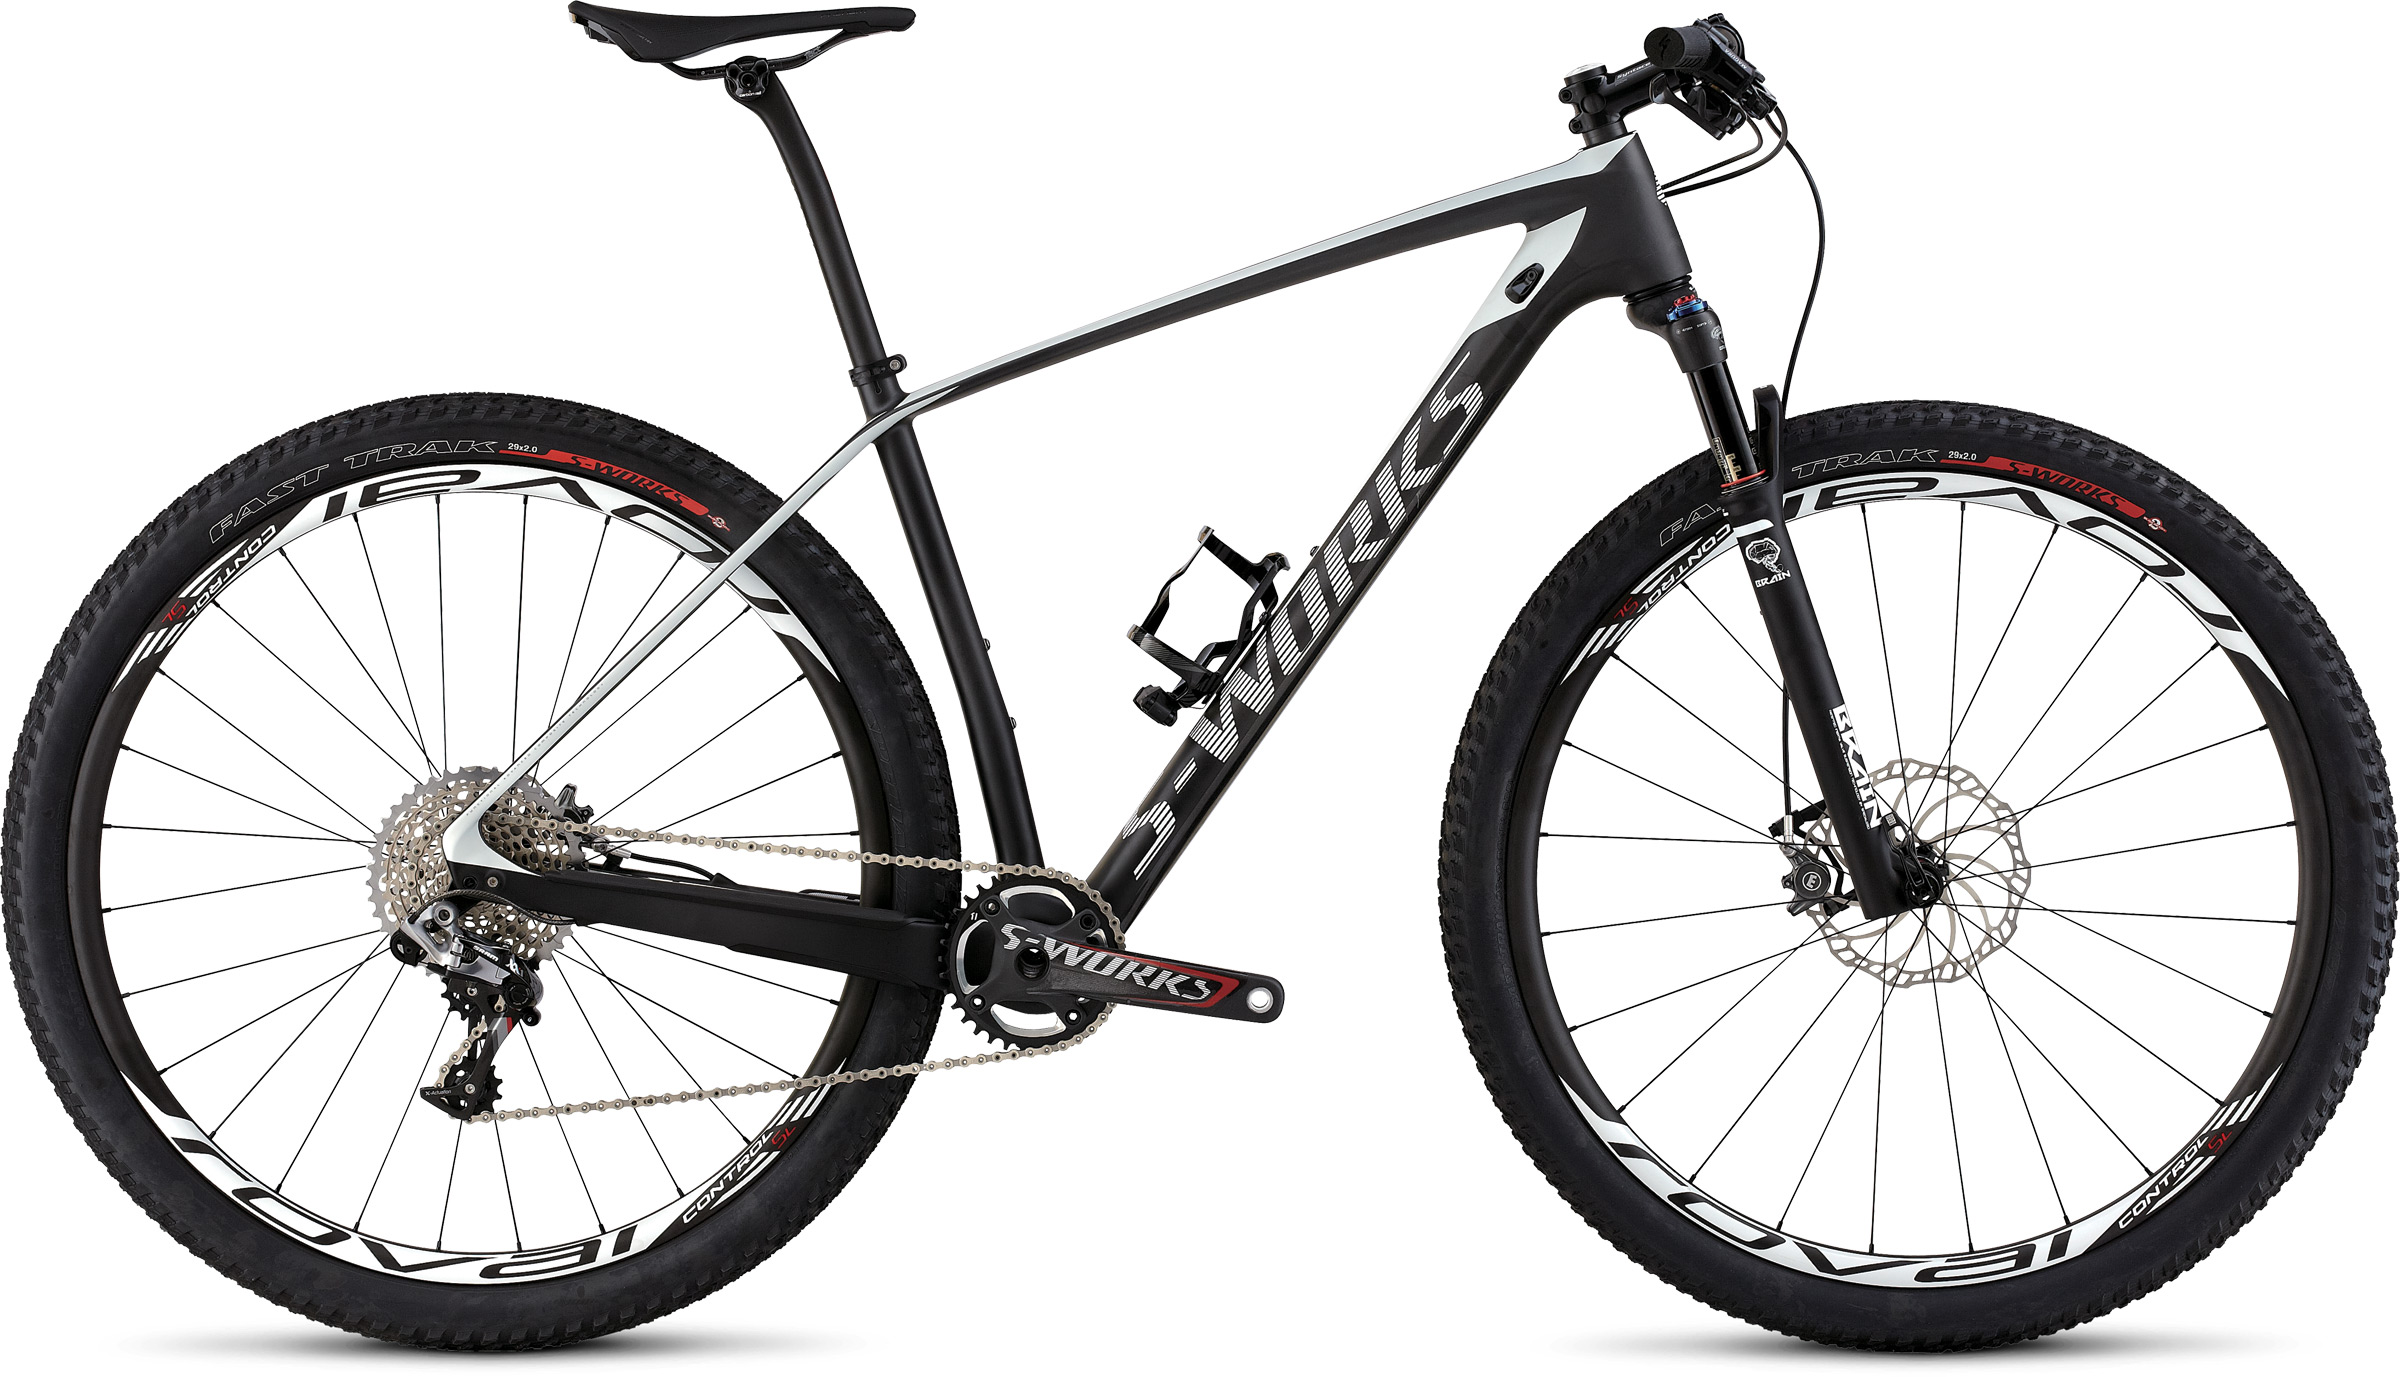 7a19727025d Specialized S-Works Stumpjumper 29 World Cup - High Gear Sports Est 1985